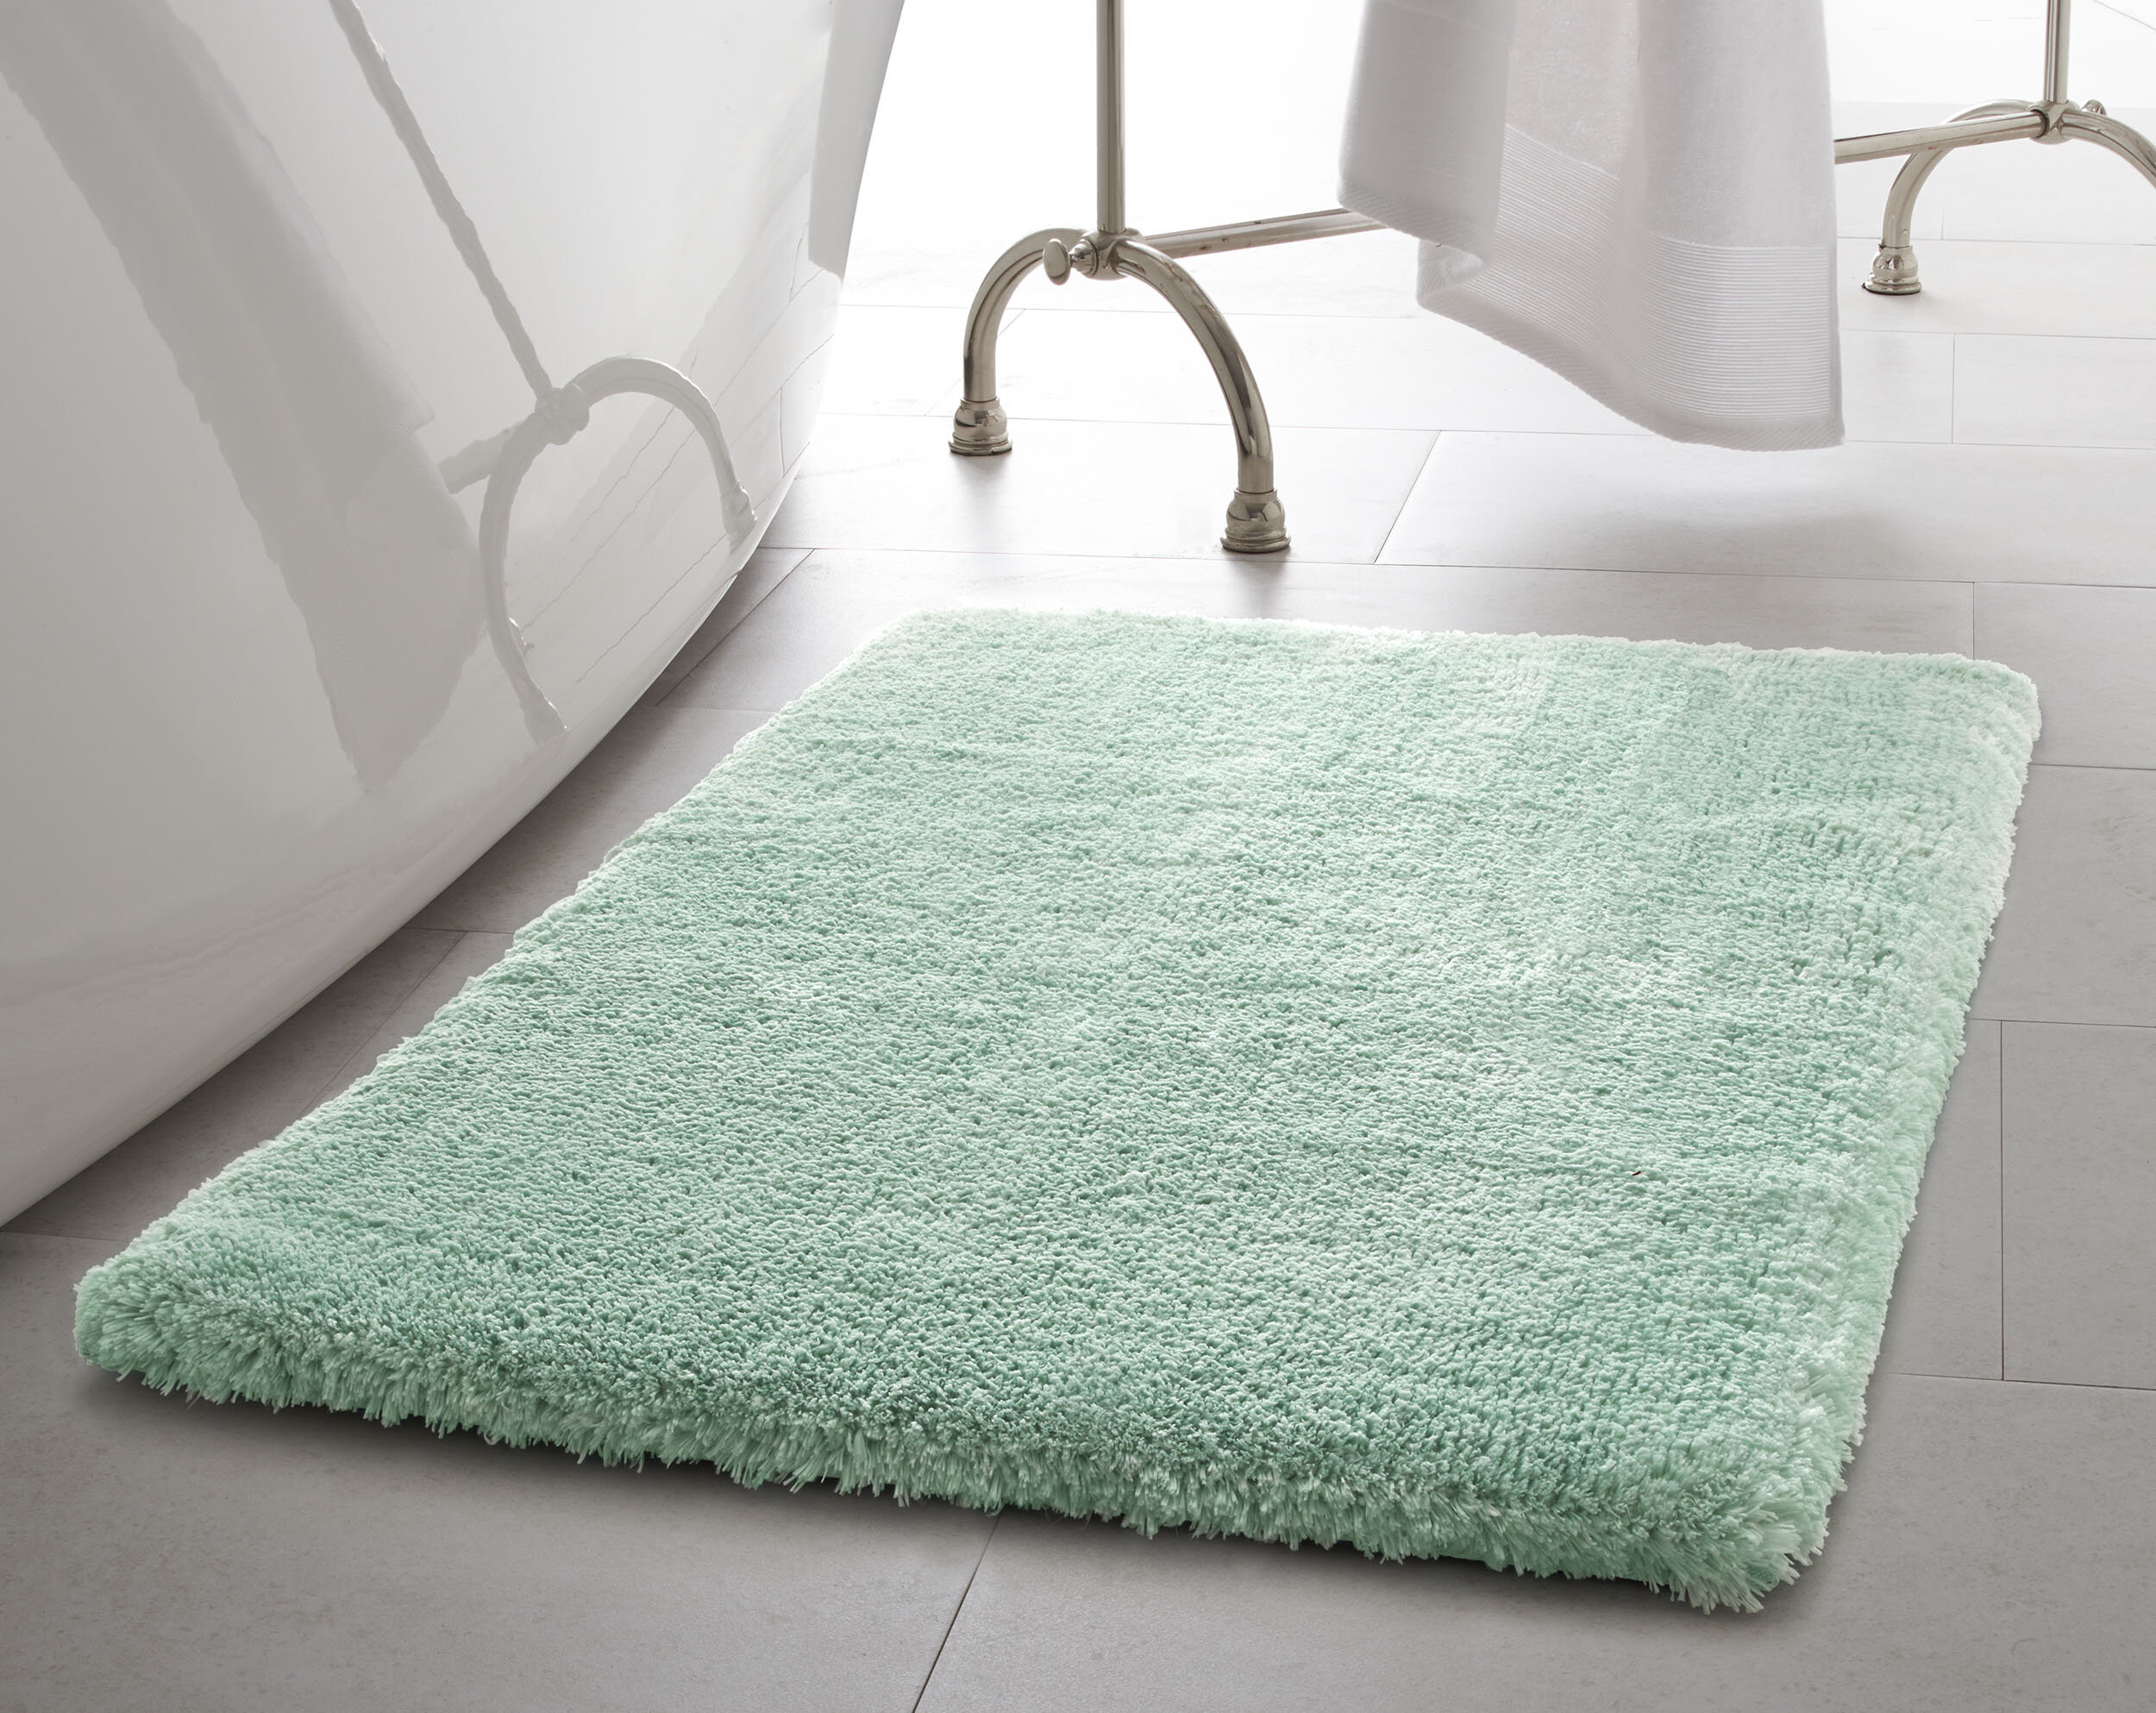 Laura Ashley Pearl Plush Rectangle Non Slip Bath Rug Reviews Wayfair